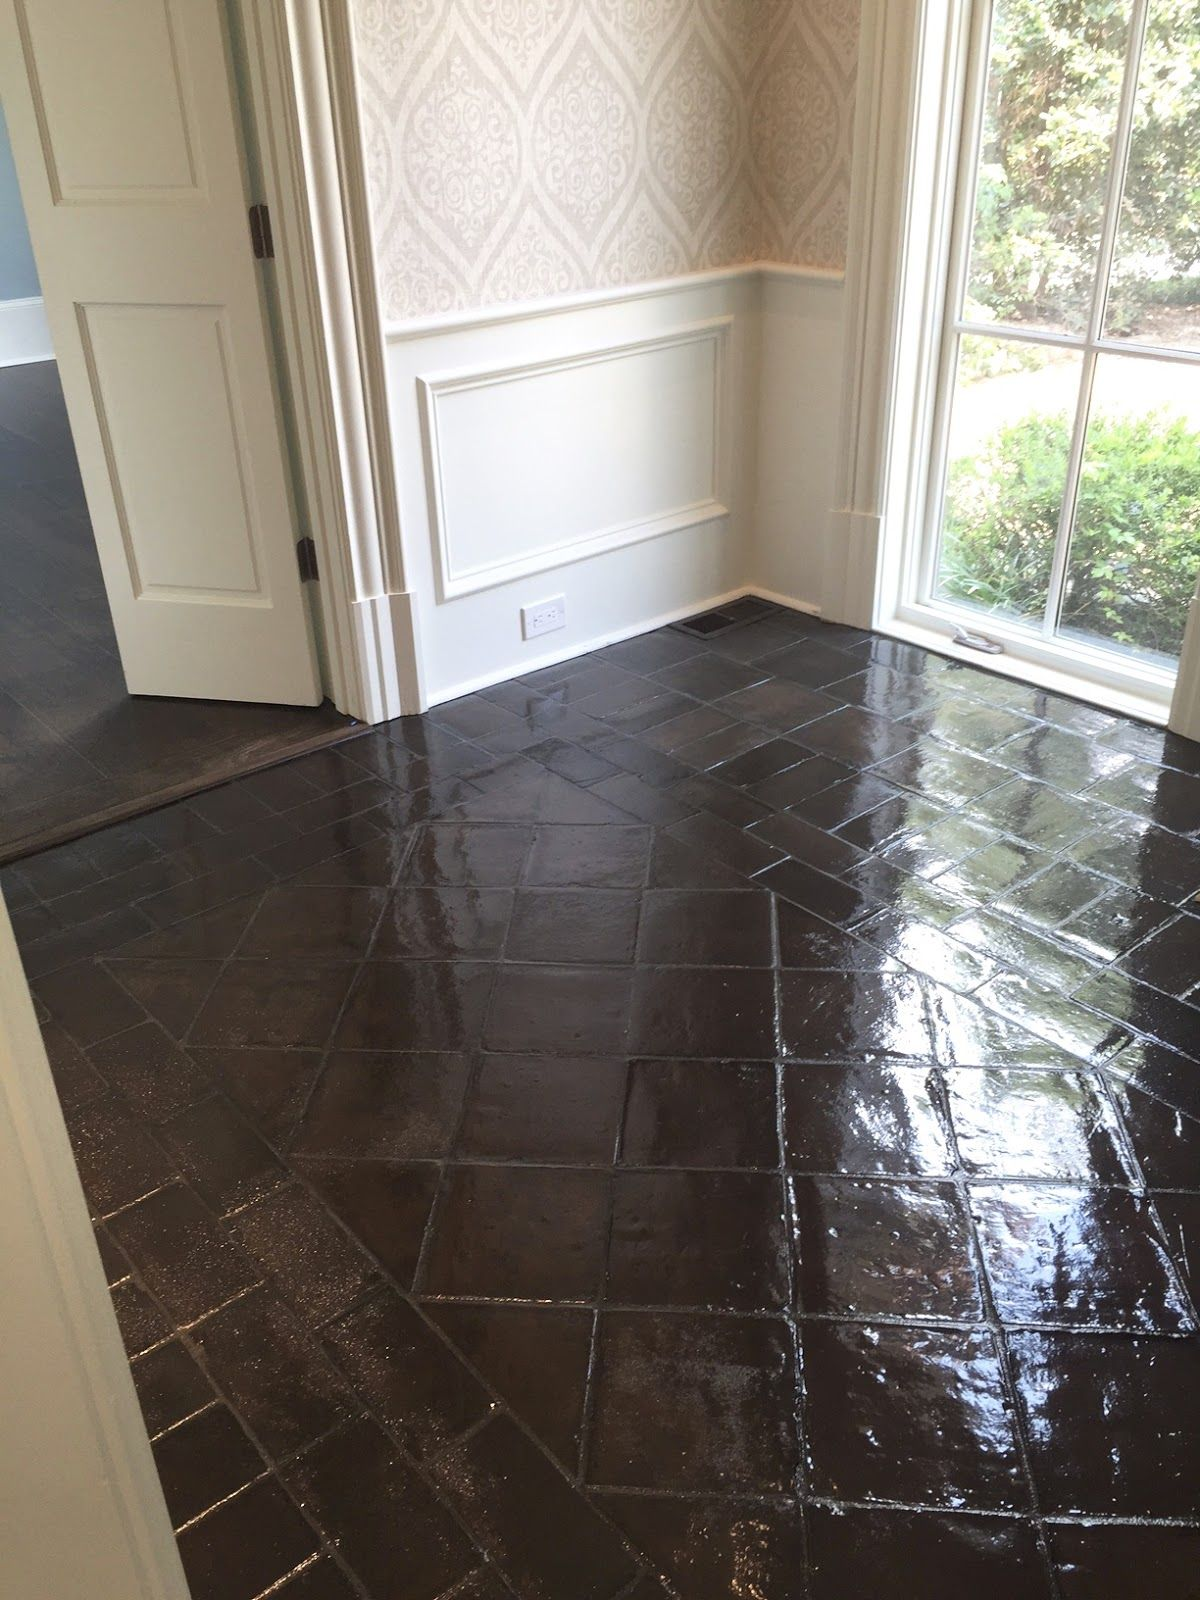 I hope guys have been following along with my renovation project design indulgence can you believe this is stained tile dailygadgetfo Image collections